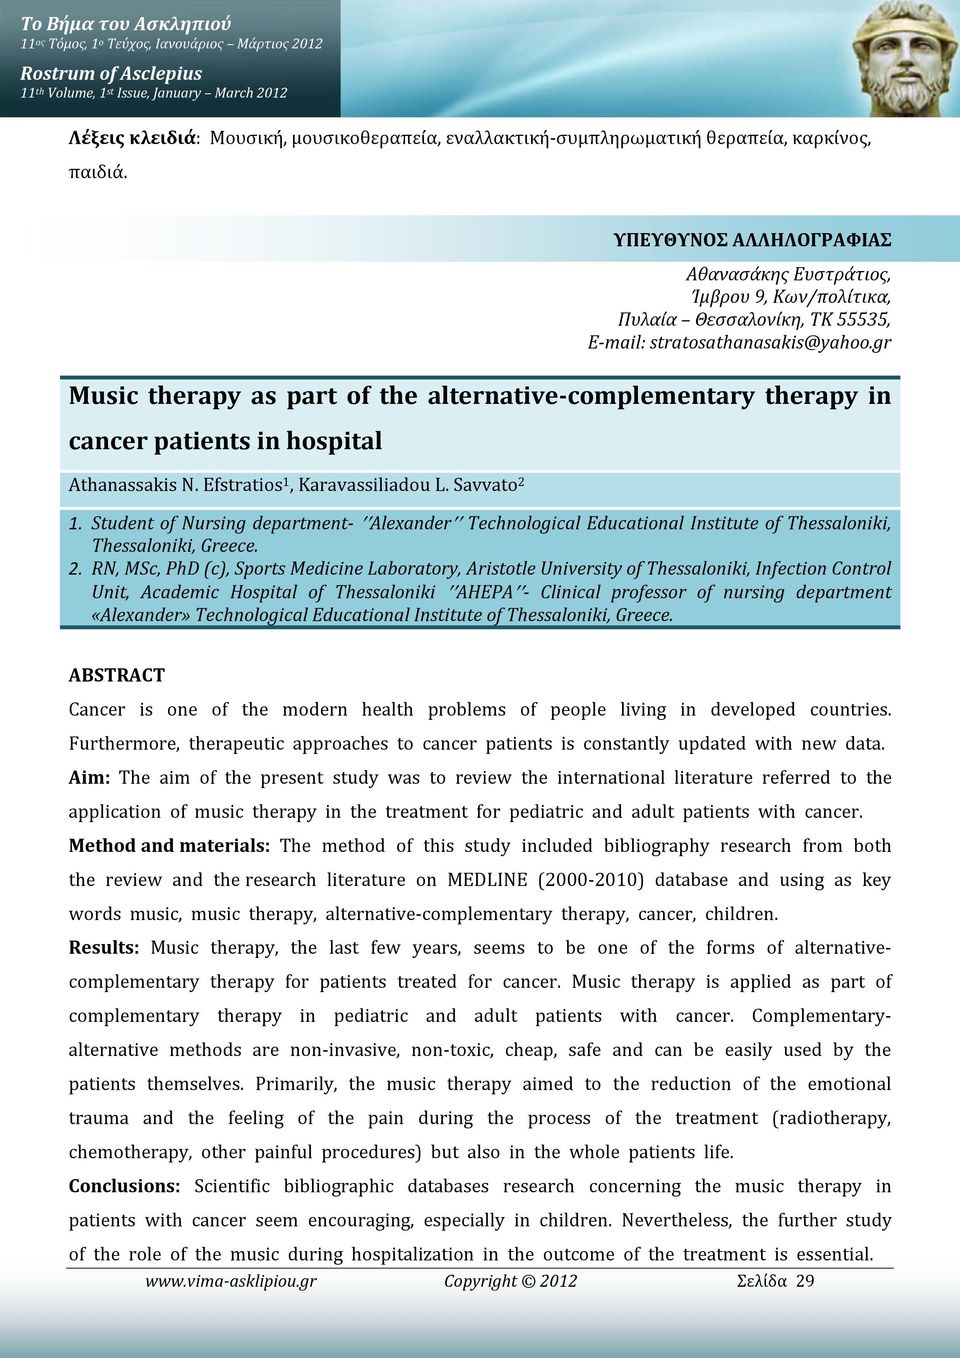 gr Music therapy as part of the alternative-complementary therapy in cancer patients in hospital Athanassakis N. Efstratios 1, Karavassiliadou L. Savvato 2 1.